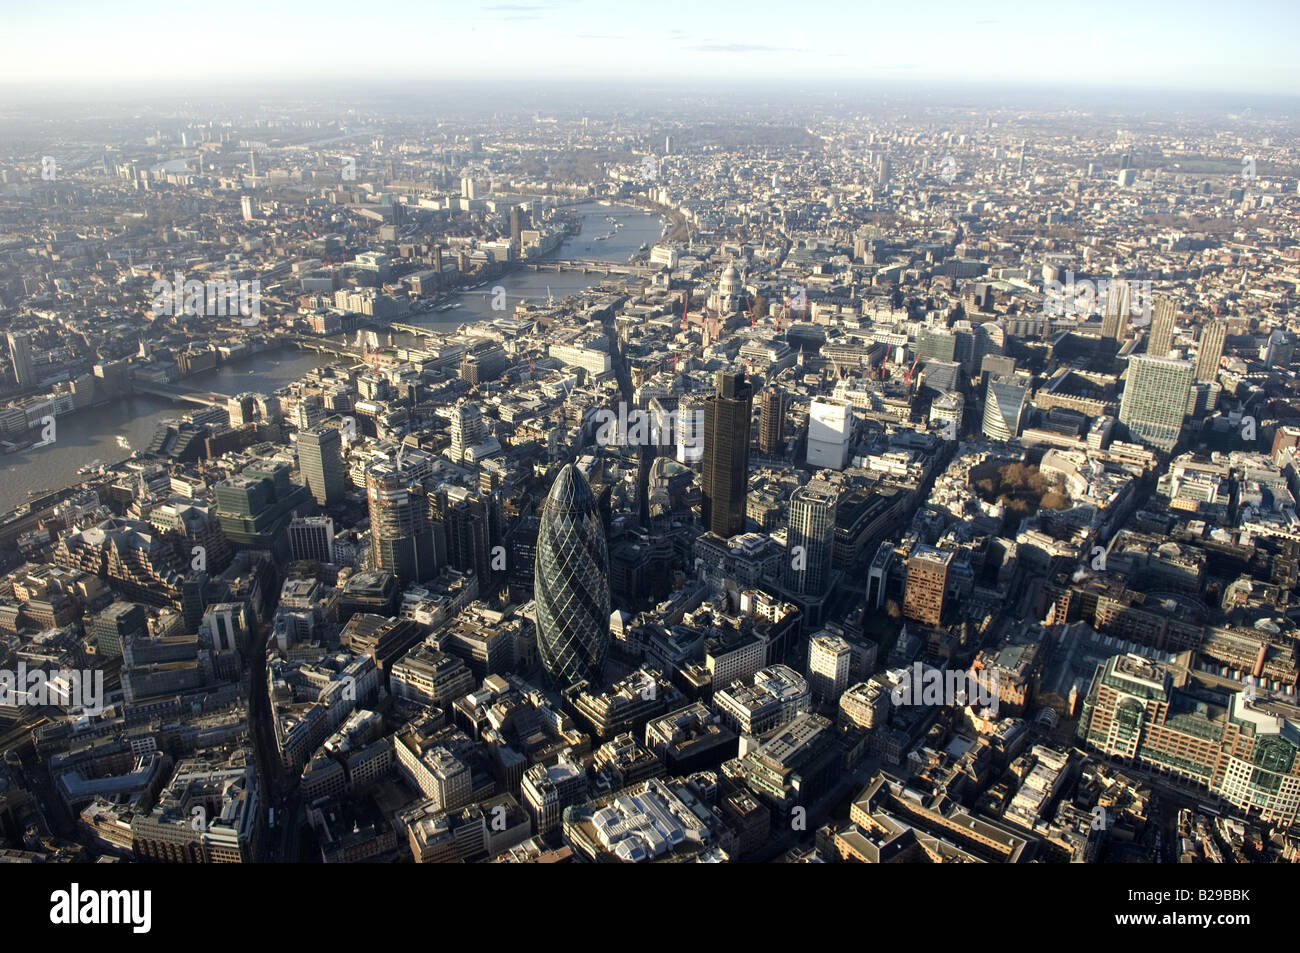 London City and Financial District Date 12 03 2008 Ref ZB648 111149 0045 COMPULSORY CREDIT World Pictures Photoshot - Stock Image